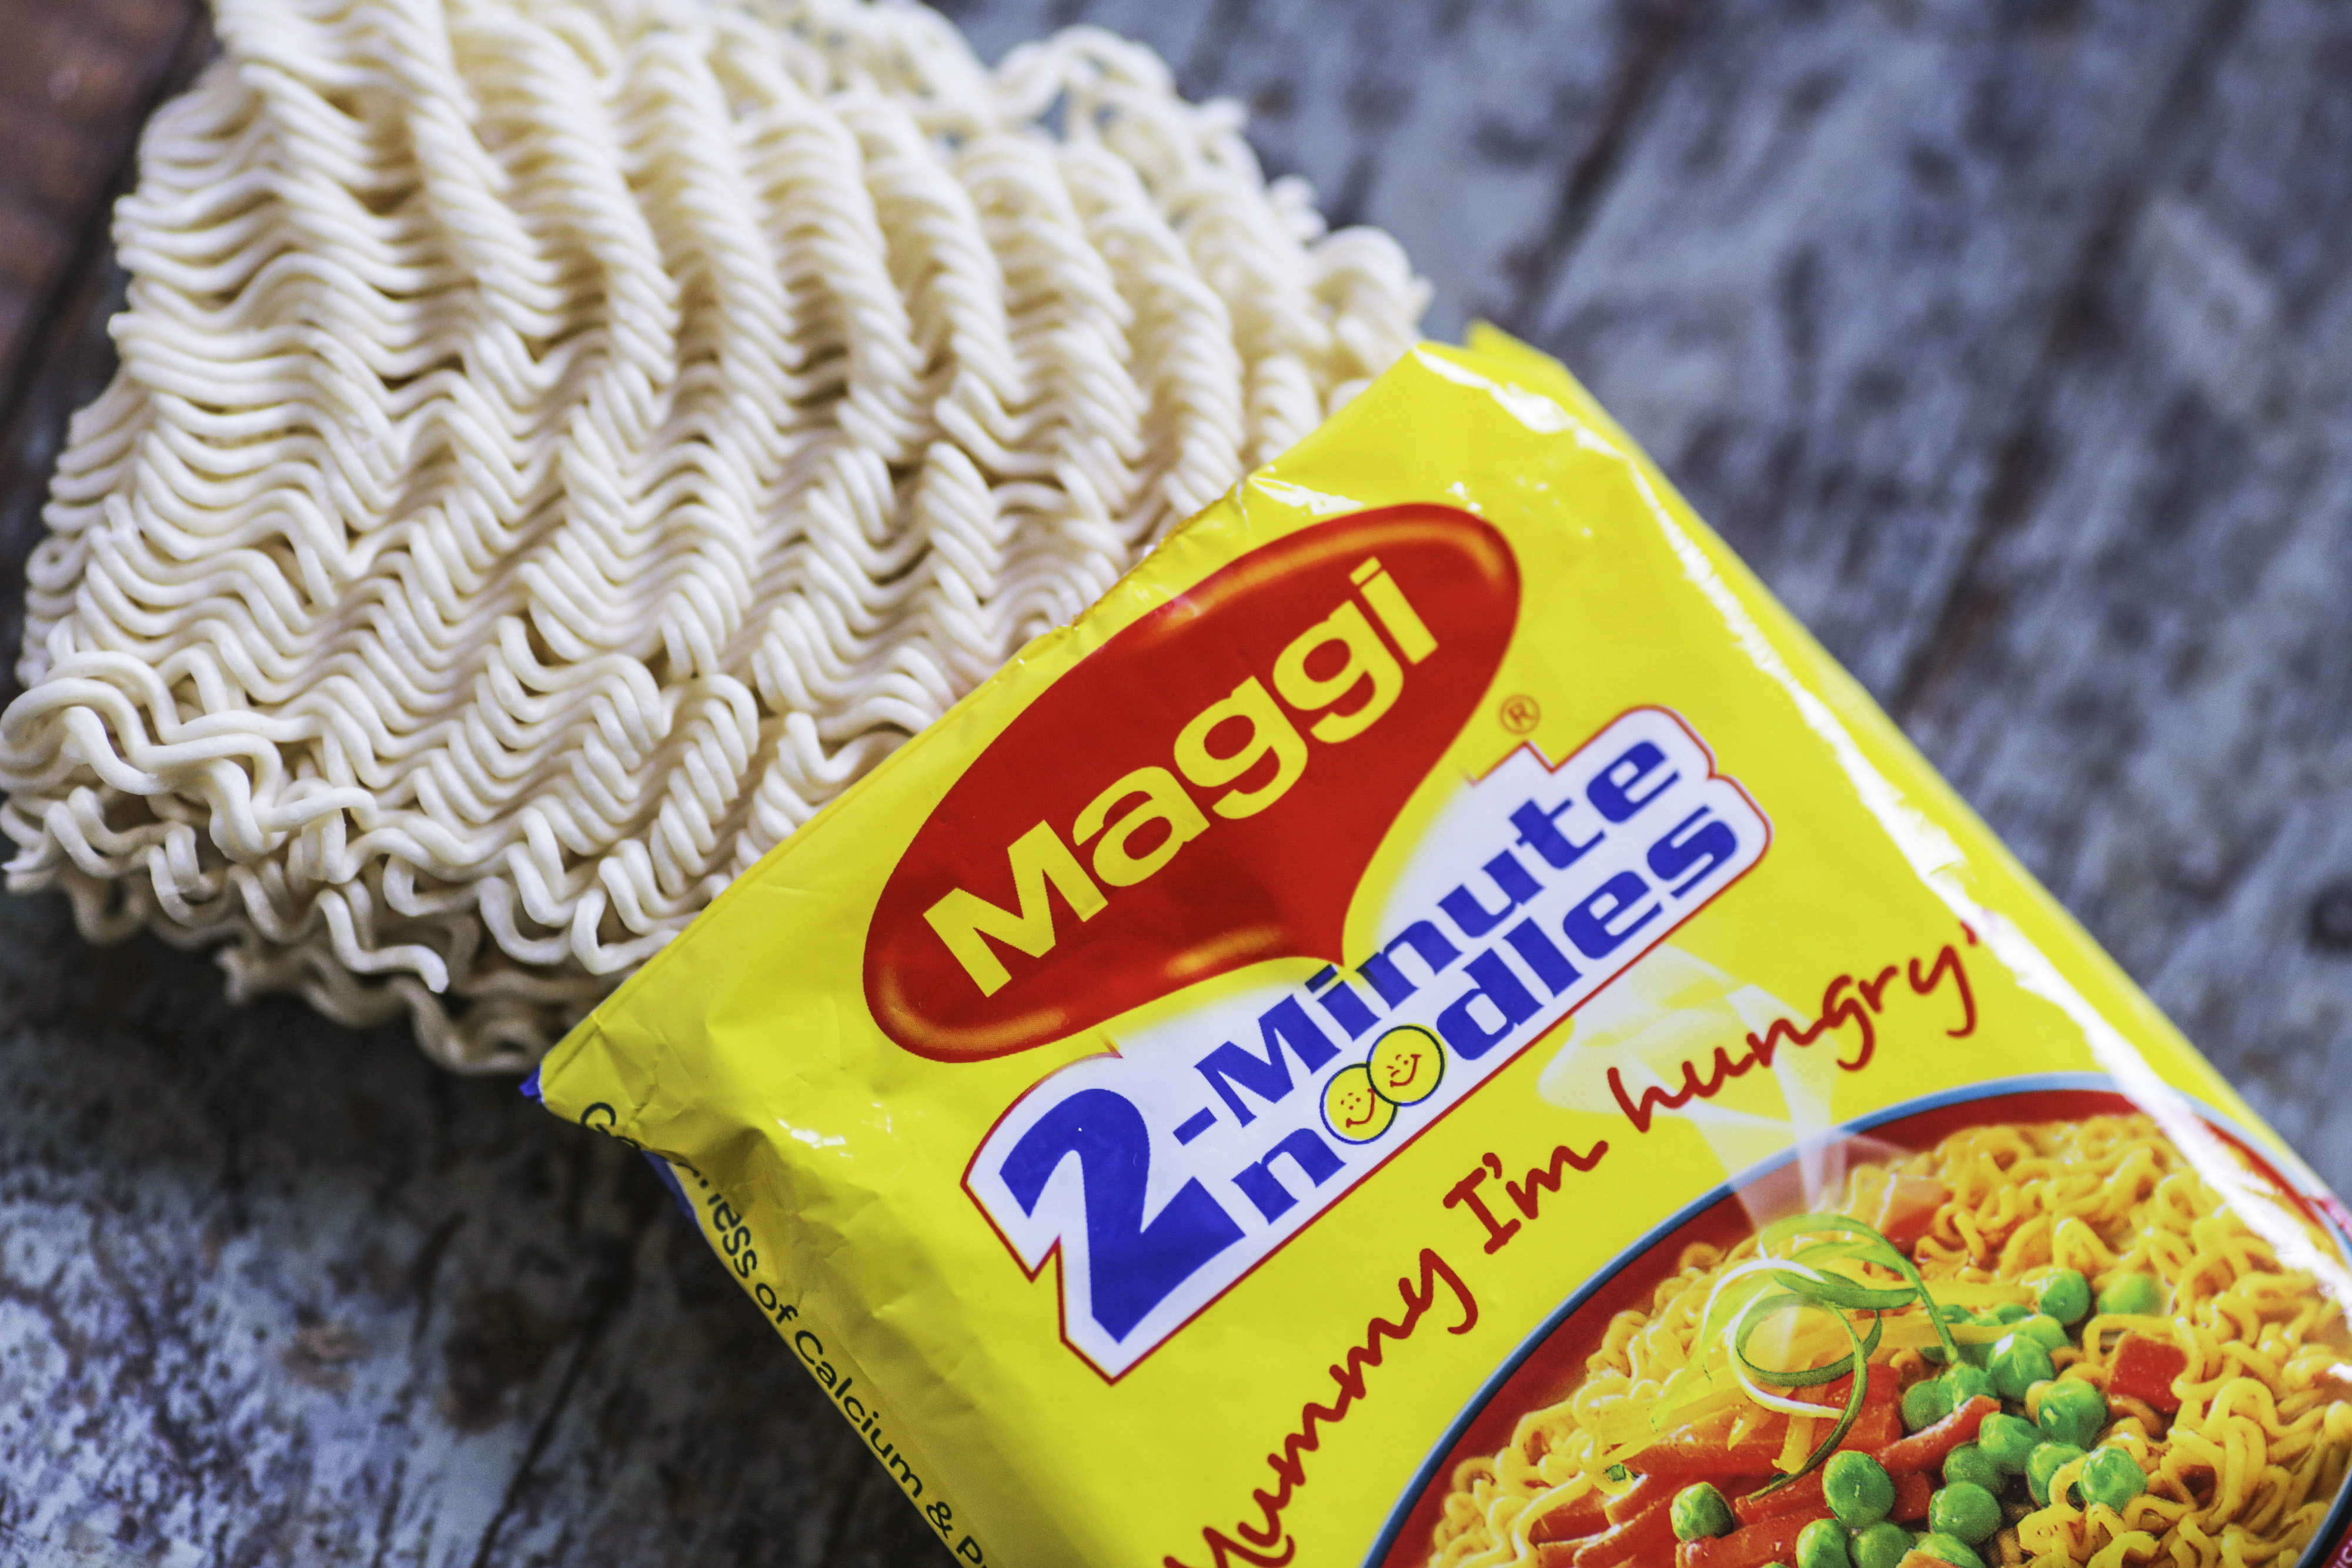 An open packet of Maggi 2-Minute Noodles, manufactured by Nestle India Ltd., are arranged for a photograph inside a general store in Mumbai, on June 2, 2015.